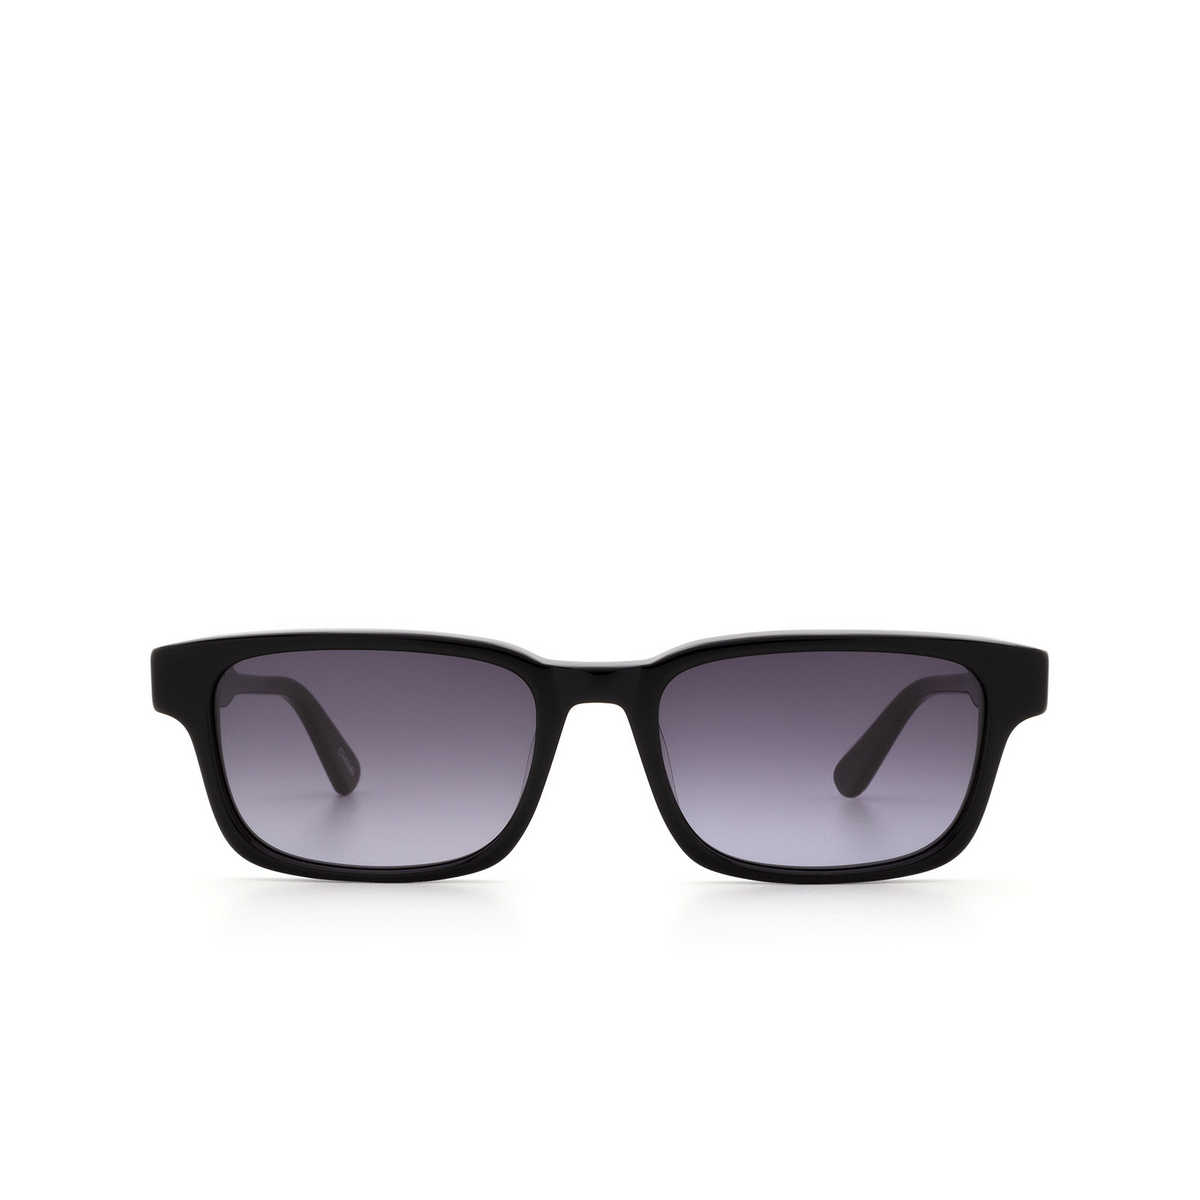 Chimi® Rectangle Sunglasses: #106 color Black - front view.